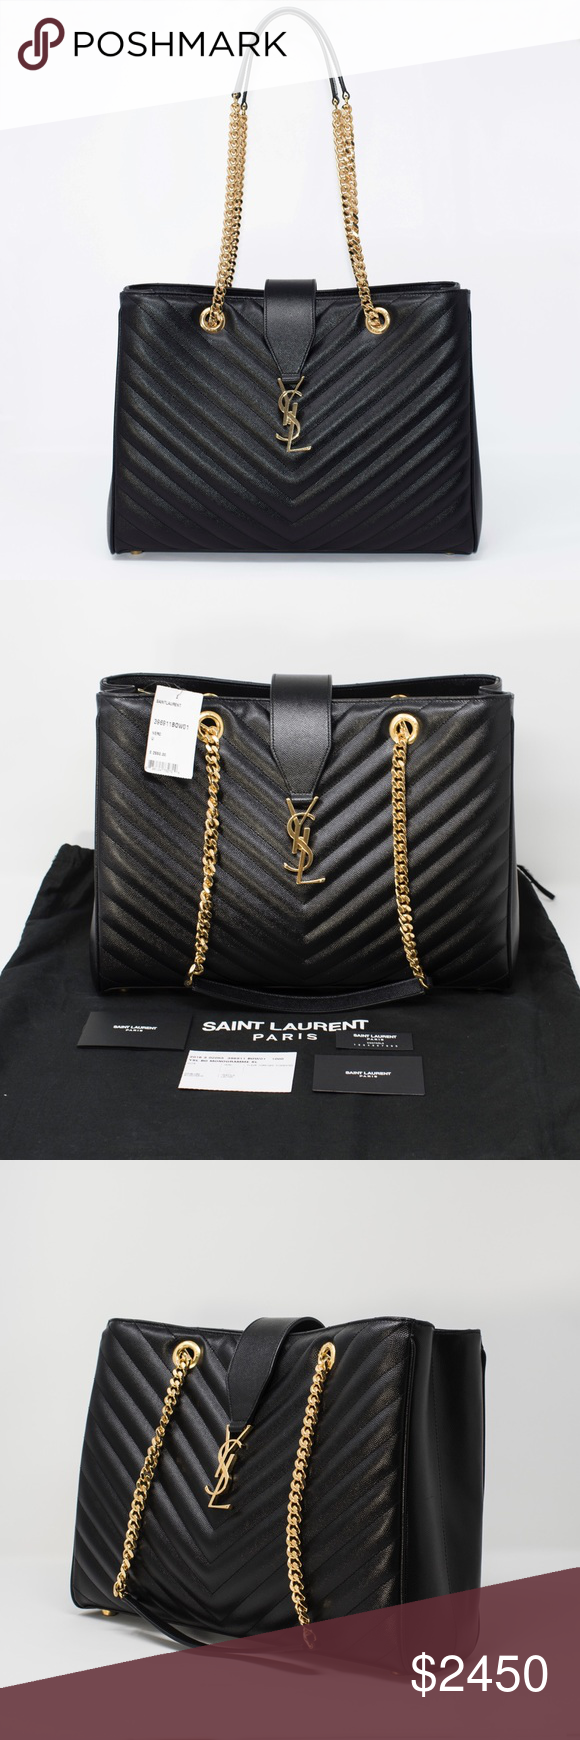 3d6a5084667 NEW YSL CHEVRON-QUILTED LEATHER SHOULDER BAG Authentic. Made in Italy.  Brand new